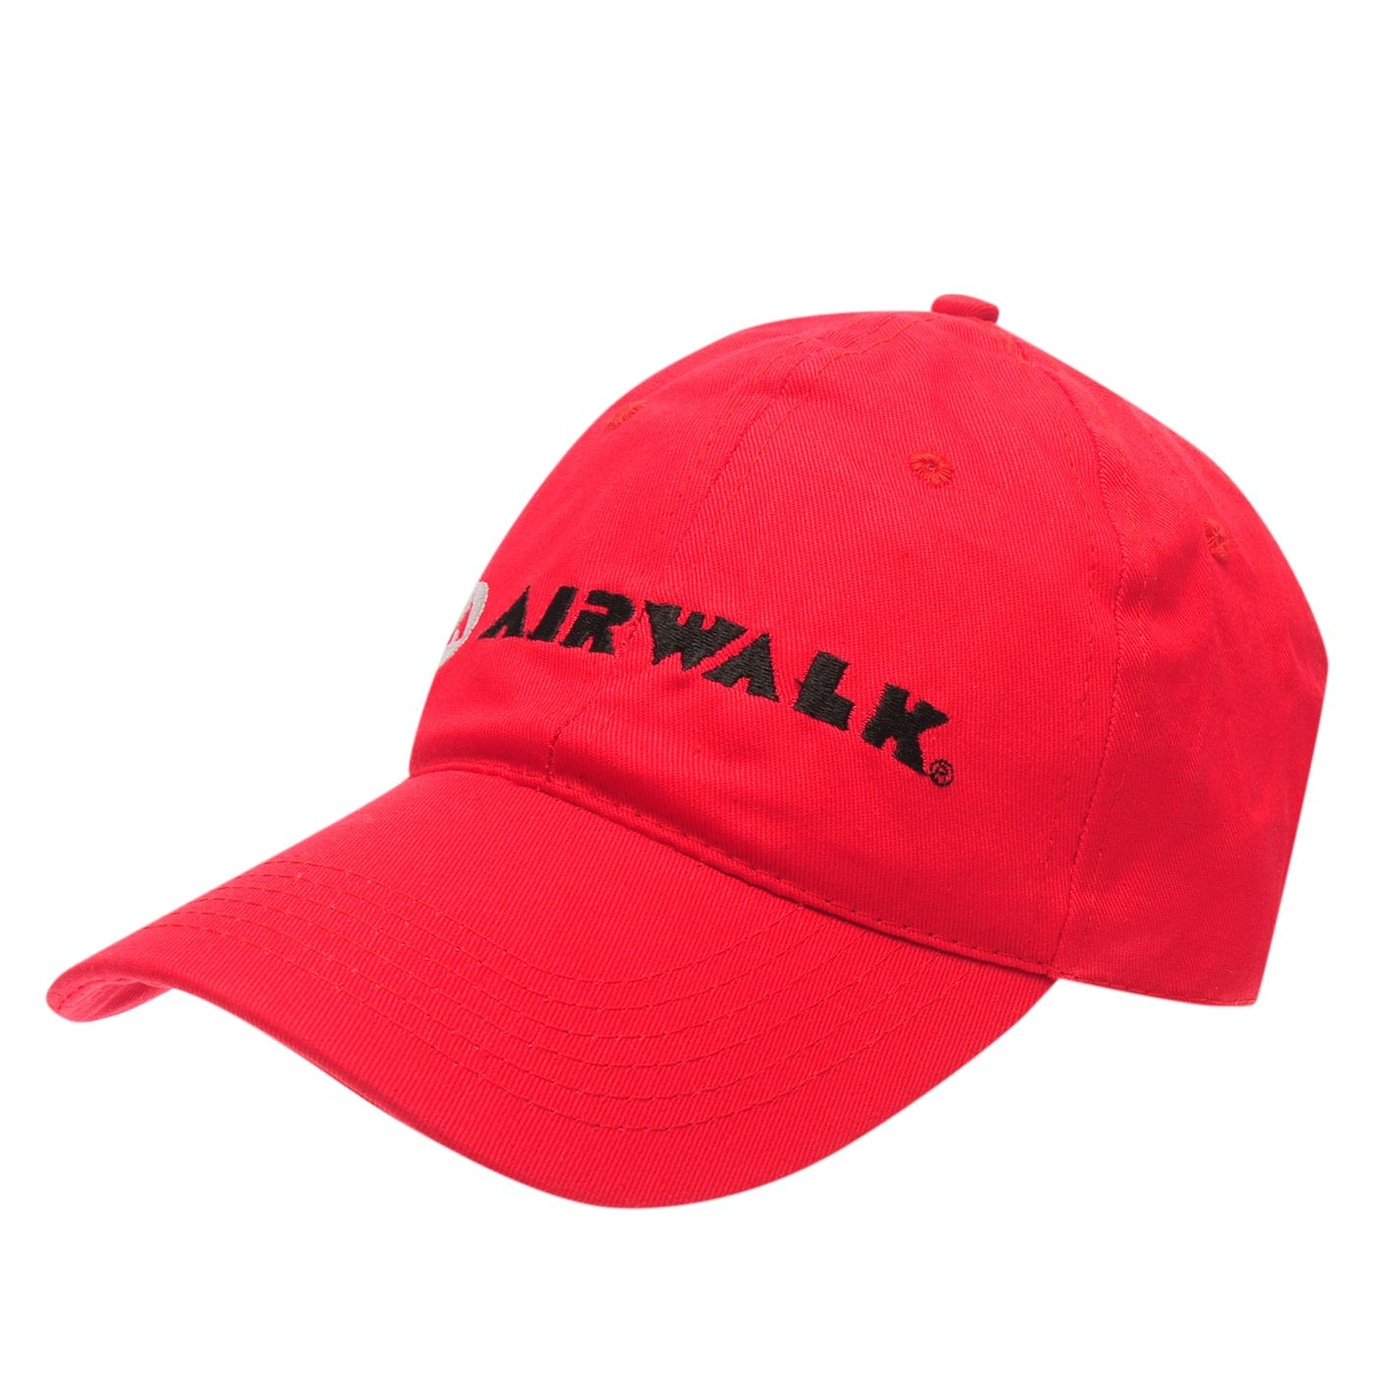 Airwalk Baseball Cap Mens